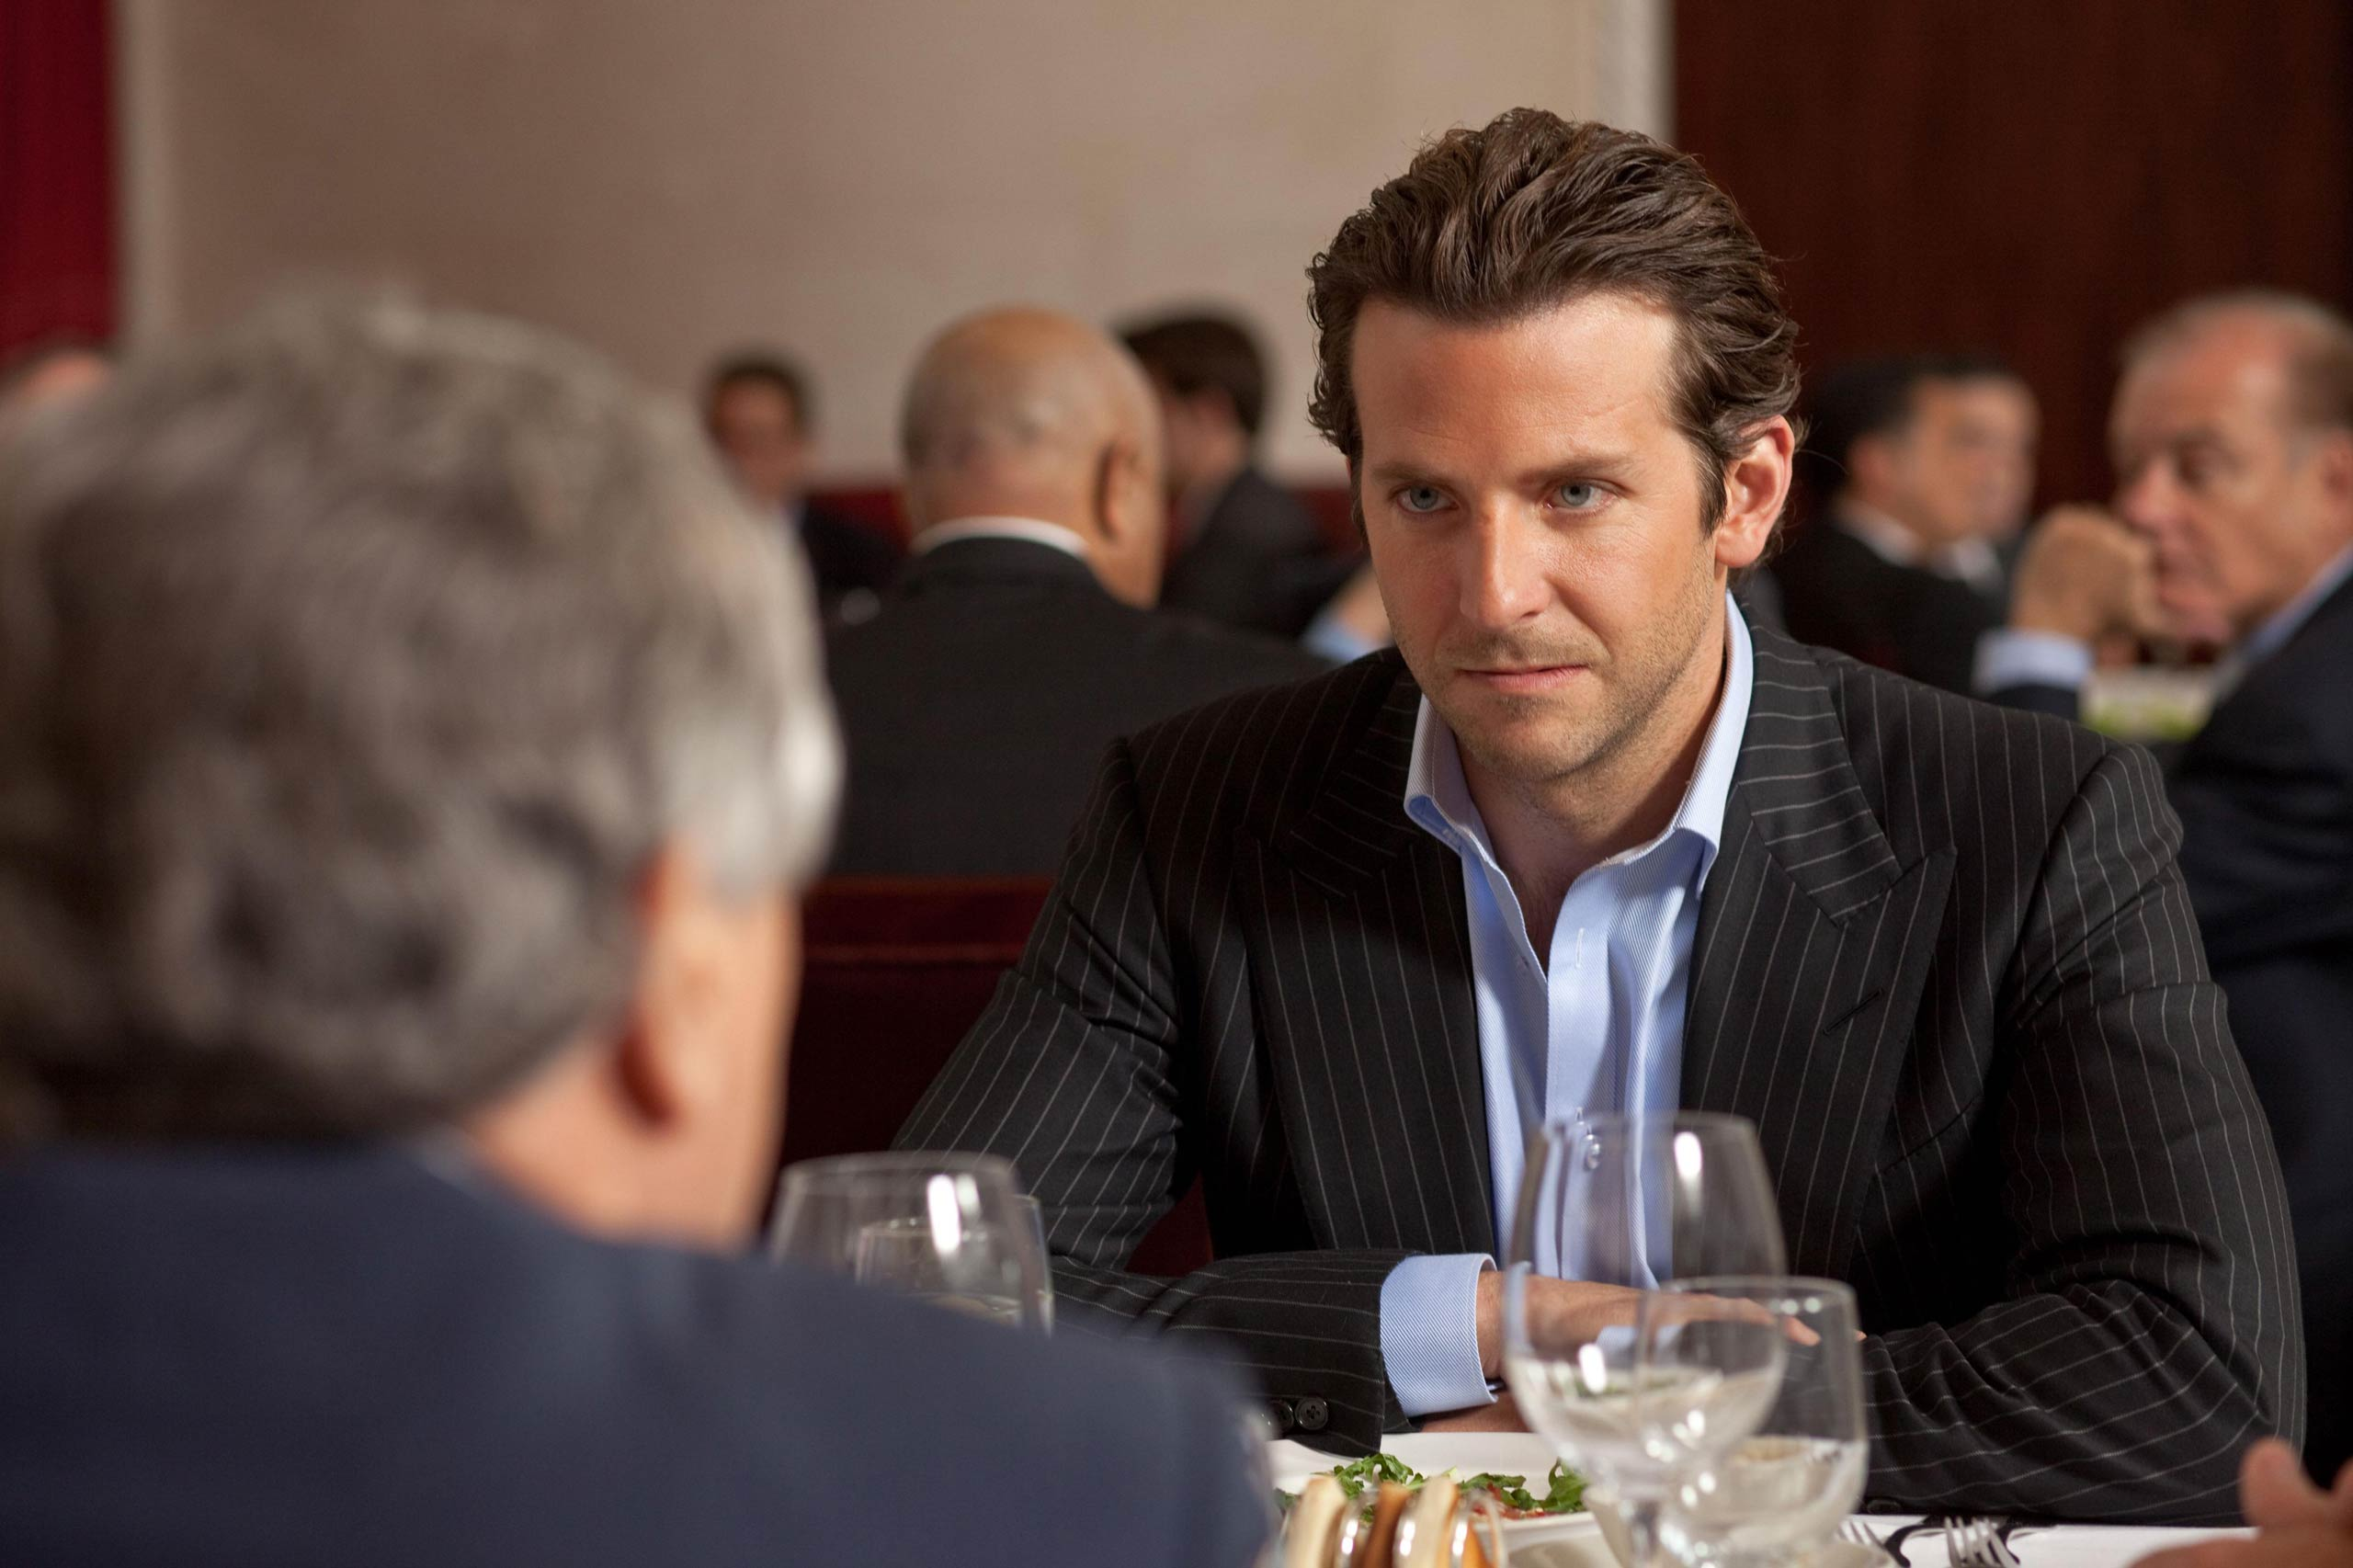 Limitless (CBS)                                                              Bradley Cooper, who starred in the action film, will executive produce the Limitless TV series about a writer who is able to access 100% of his brain on a mysterious drug called NZT.